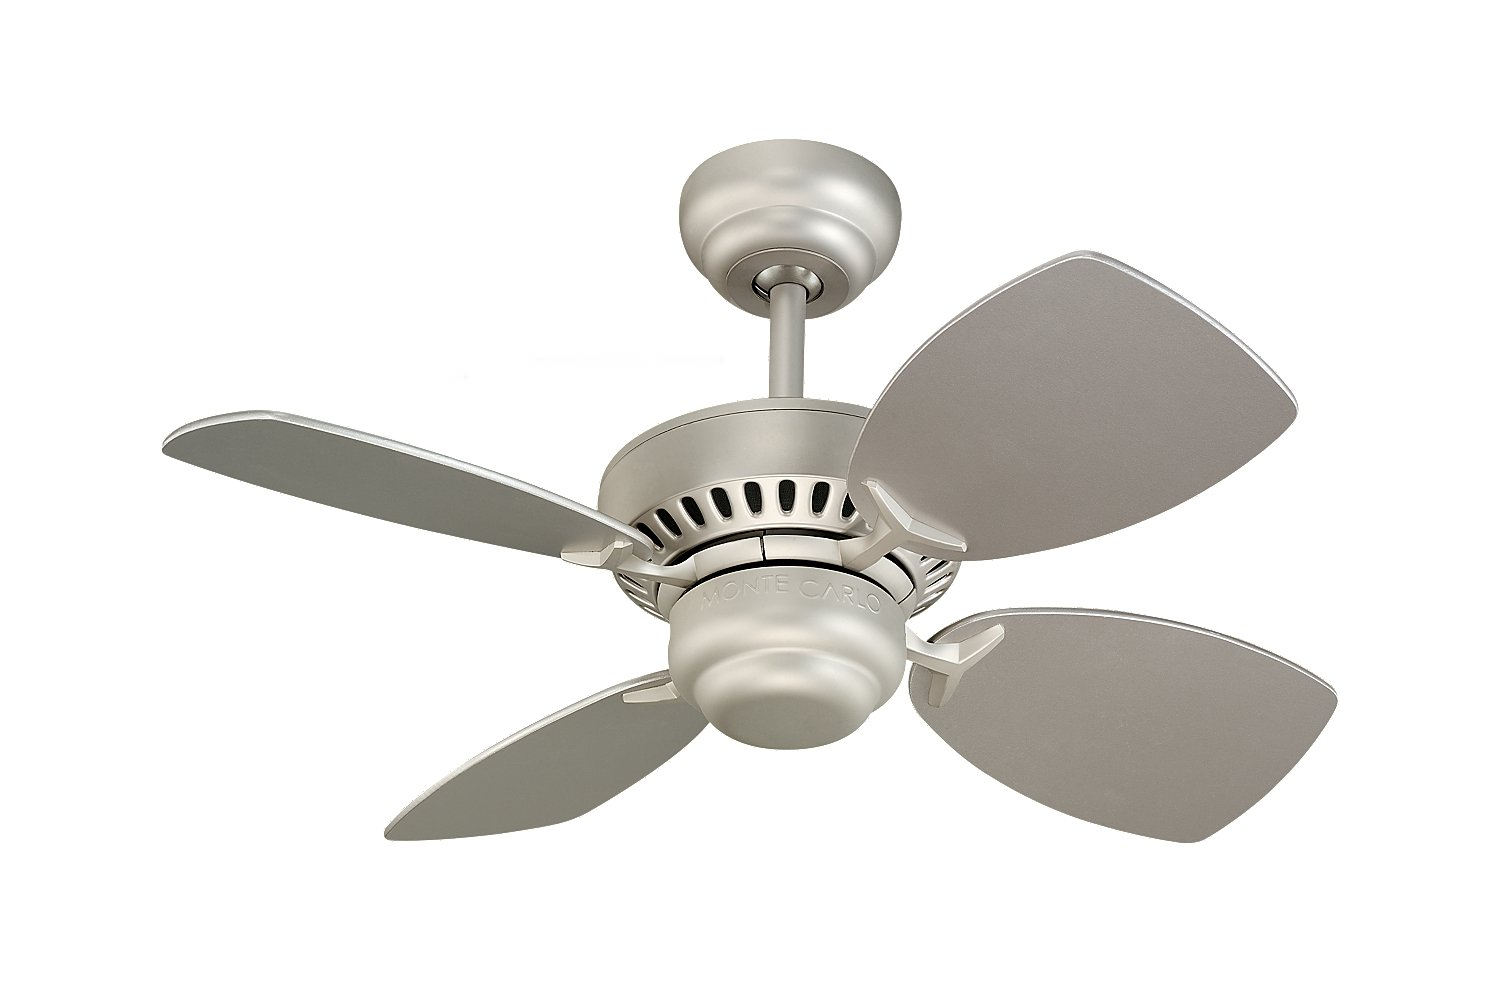 ceiling quorum nickel fans fan control amazon com light dp ceilings wall with trimark satin